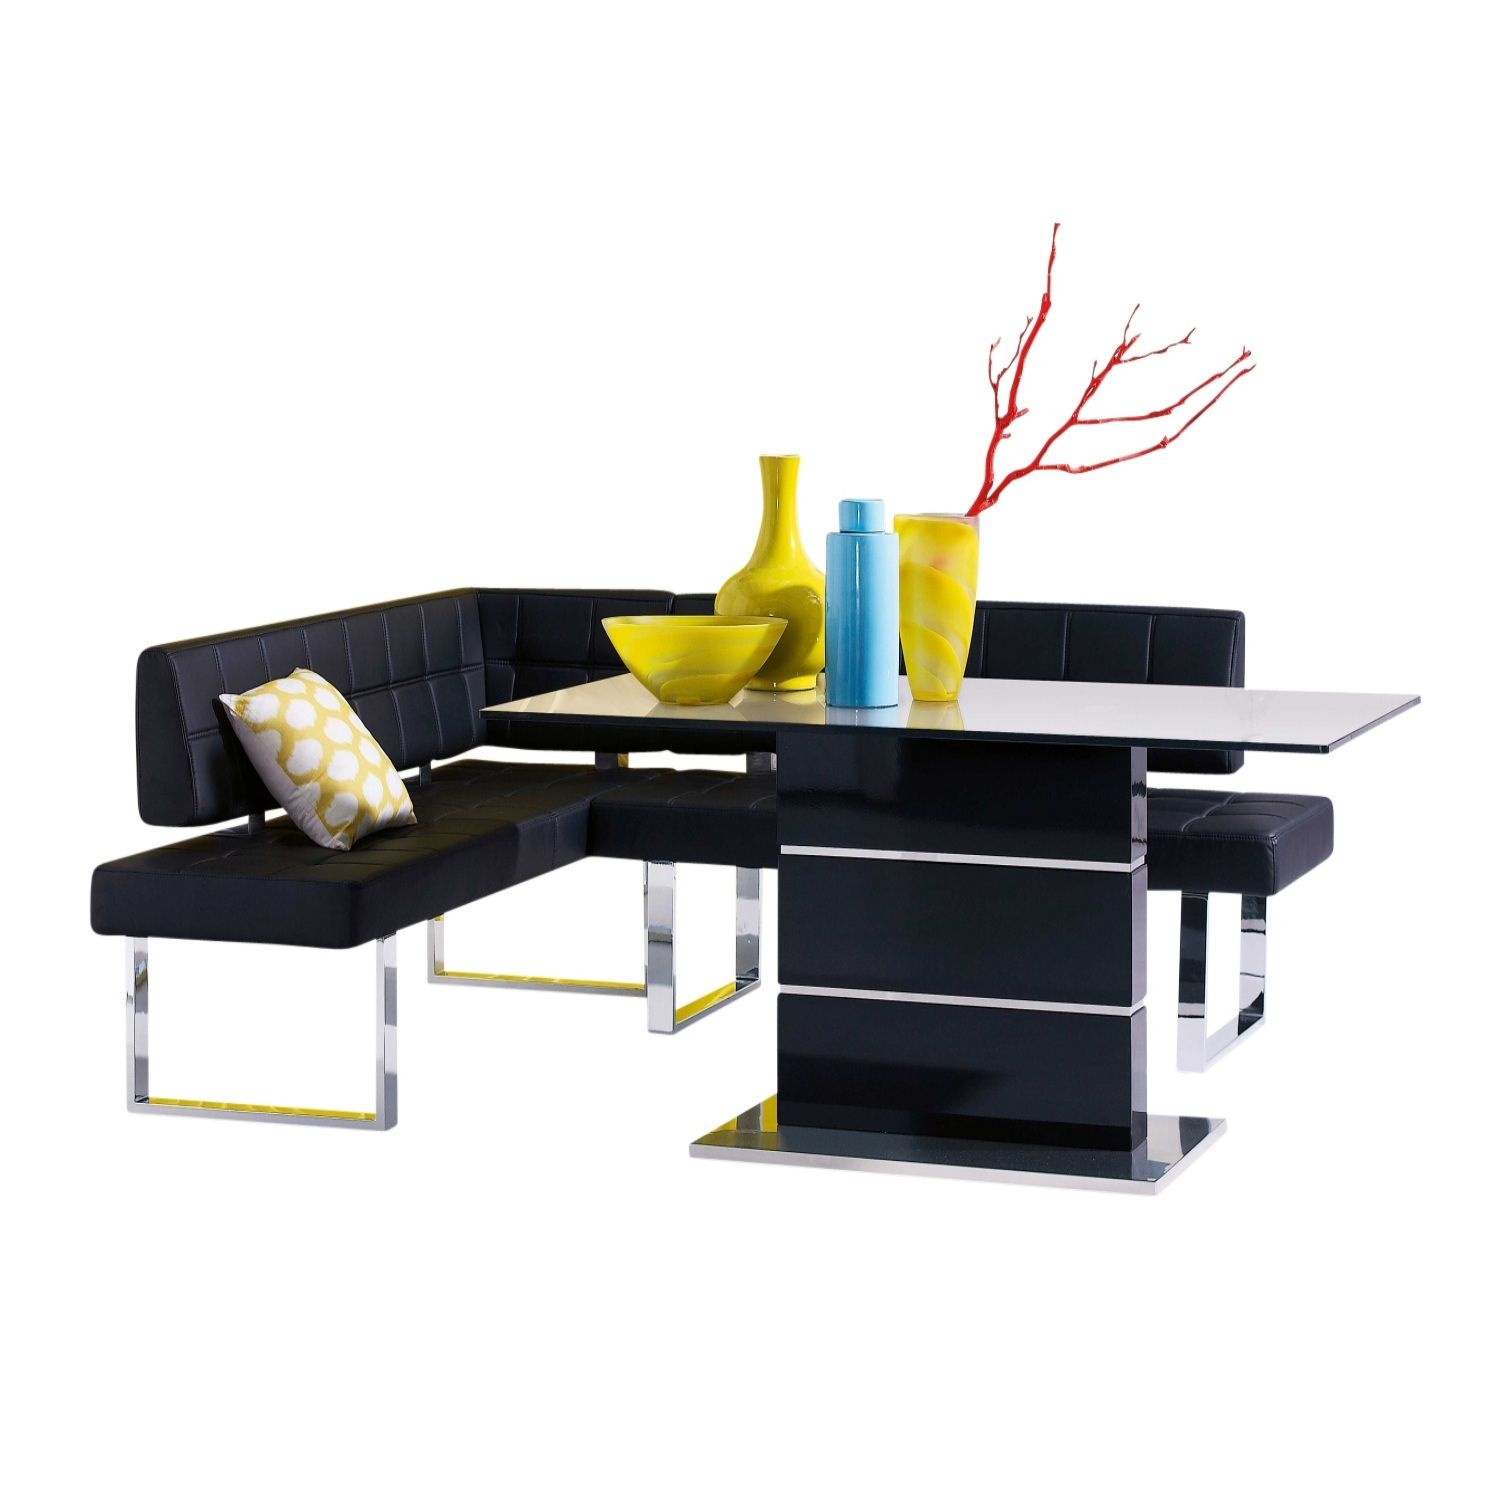 Petite 3 Piece Corner Bench Dining Package from Domayne line